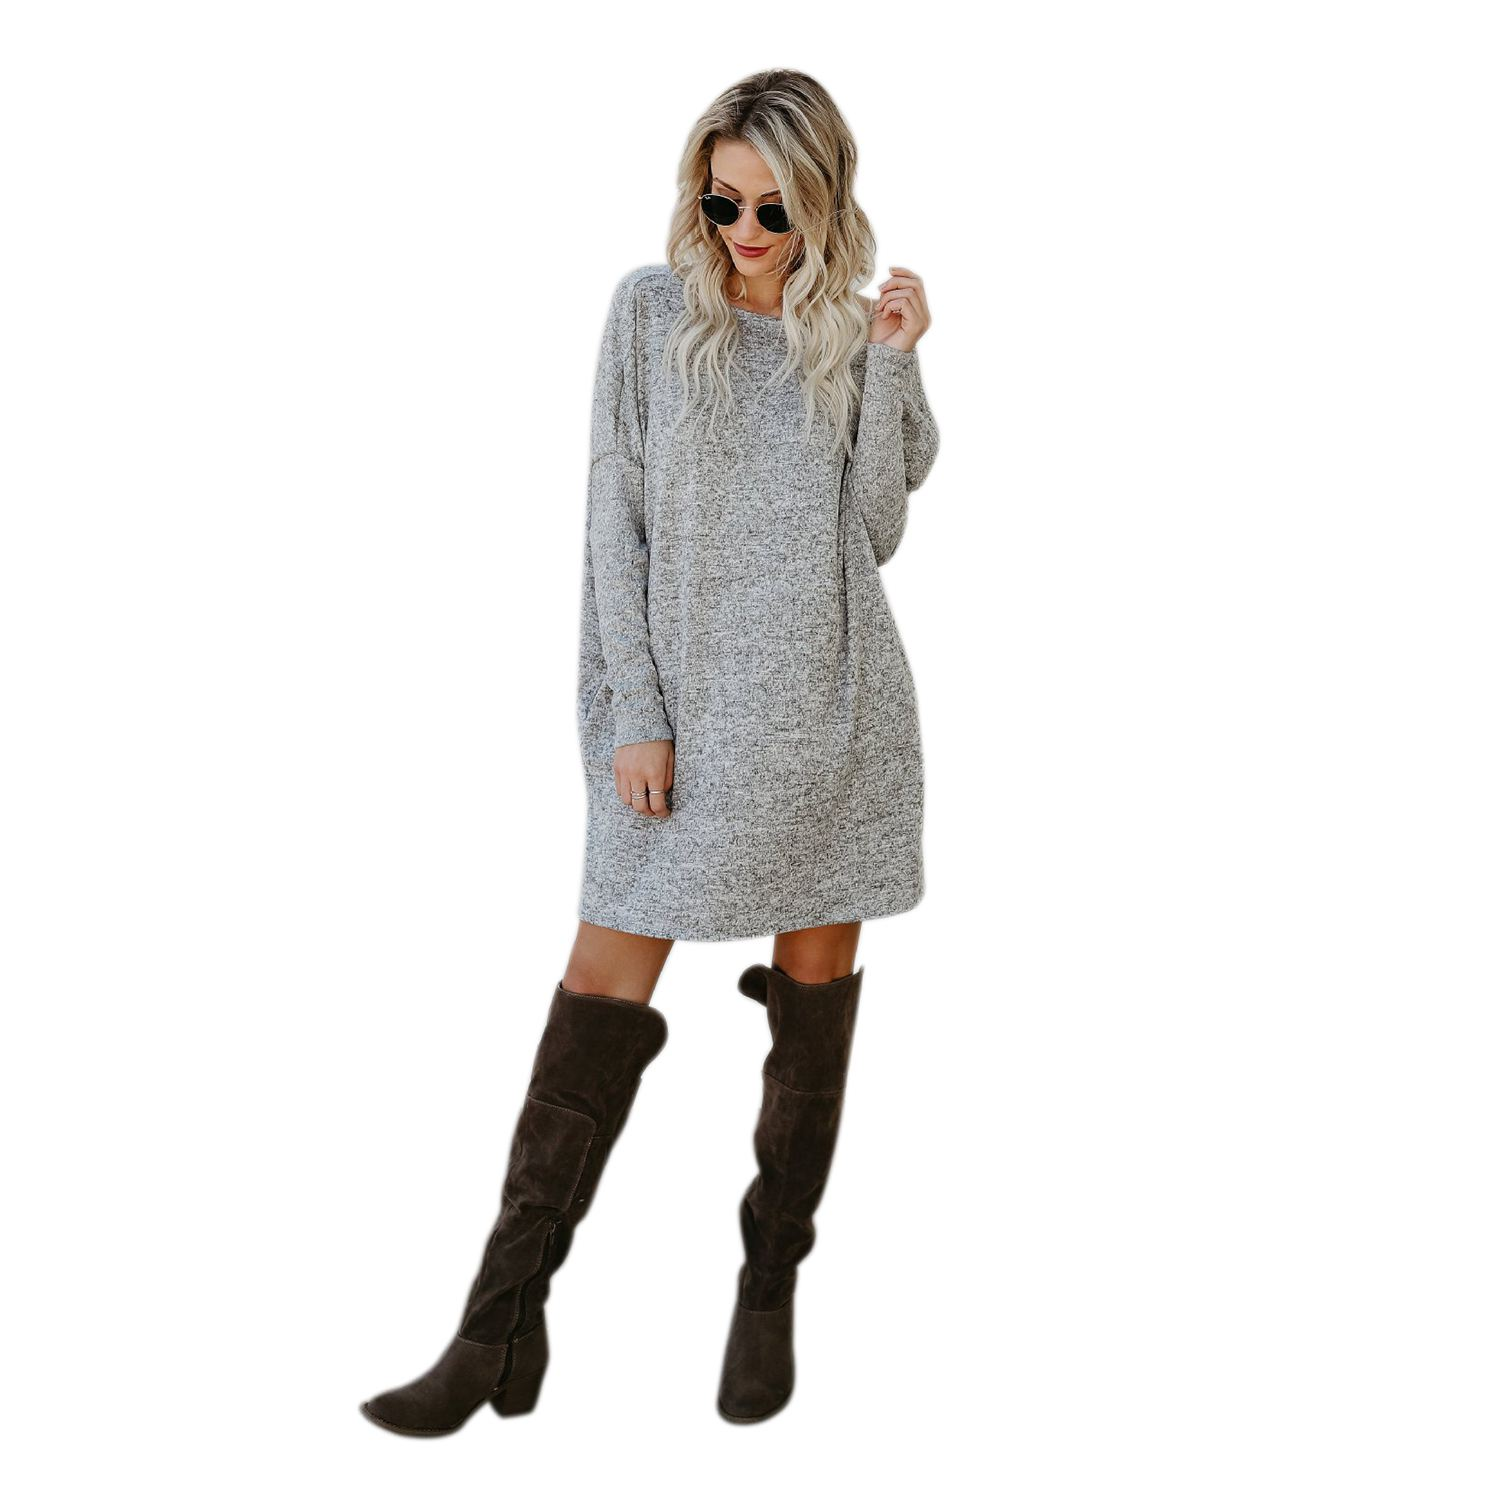 NEW-Women New Spring Autumn O Neck Elegant Casual Sweater Knitted Dress With Pocket Dresses Dresses new